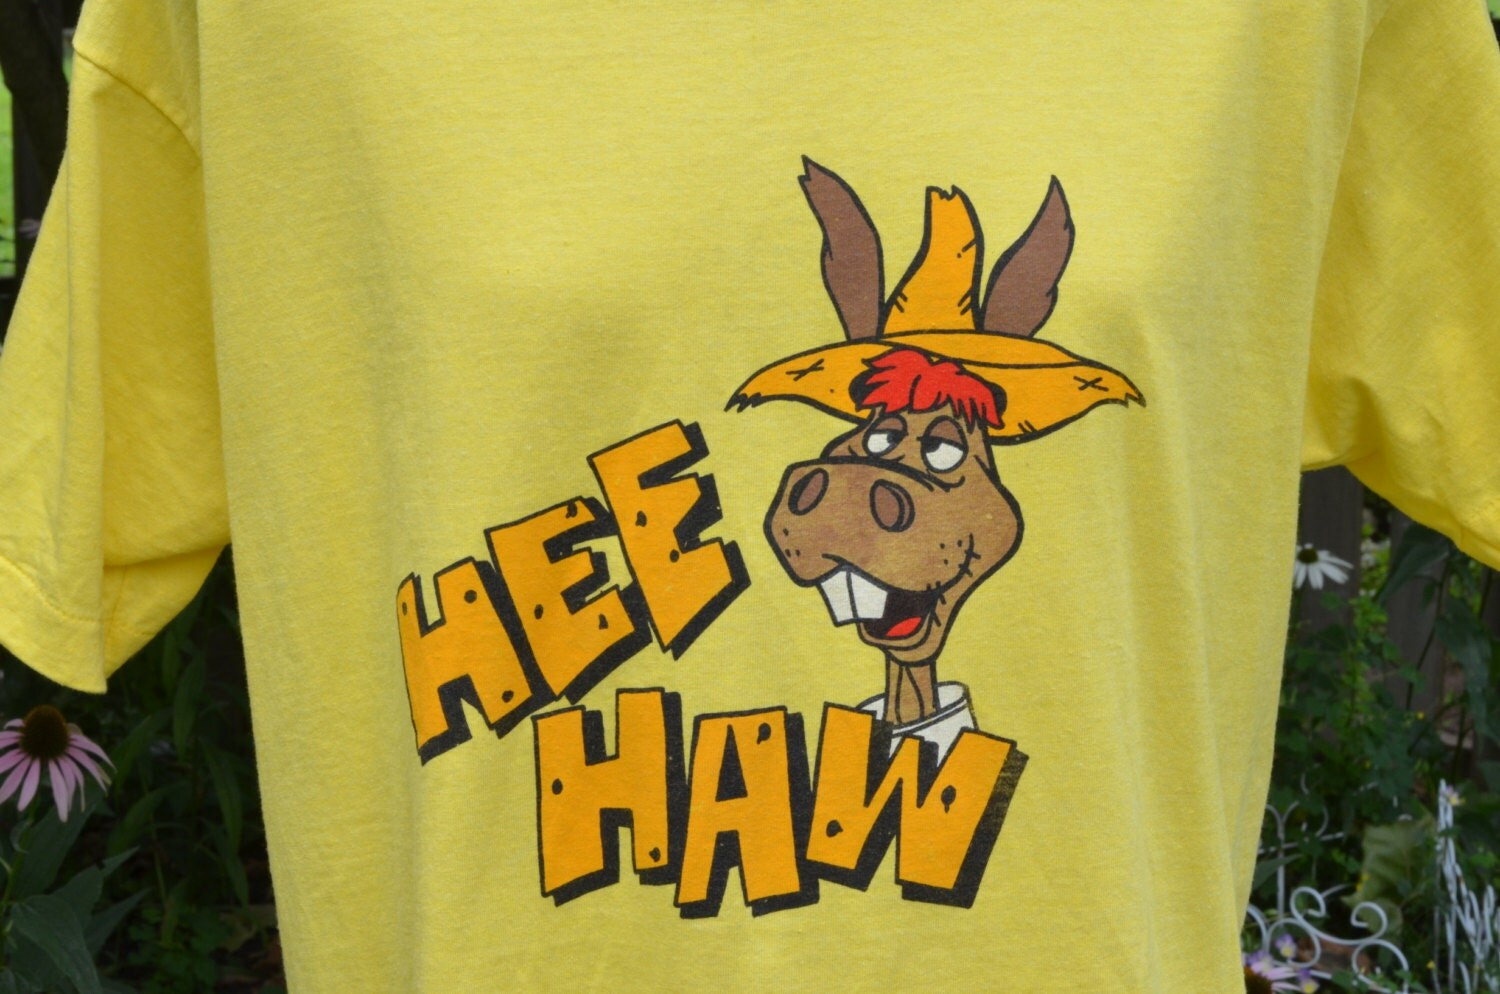 The LuLu Roman Gallery Pictures of hee haw